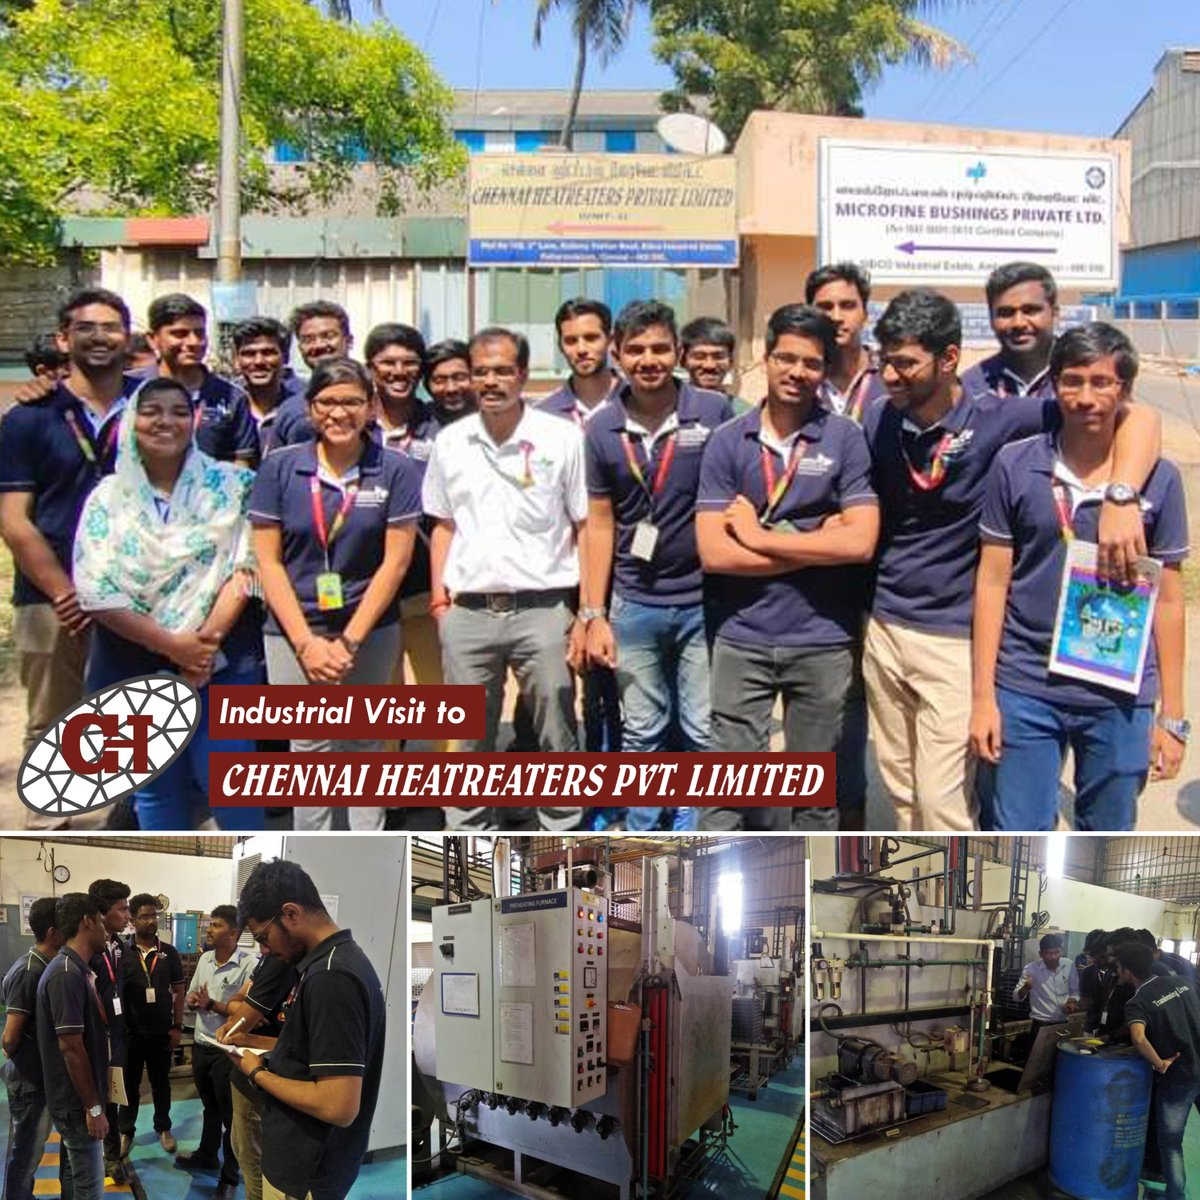 Industrial Visit to Chennai Heat Treaters Pvt Ltd. organised for Second Year Students by Department of Mechatronics on 17th Feb, 2020  #IndustryConnectedInstitute #IndustrialVisit #ChennaiInstituteofTechnology #CITChennai #TransformingLives #Engineeringpic.twitter.com/azHNuEkDs0